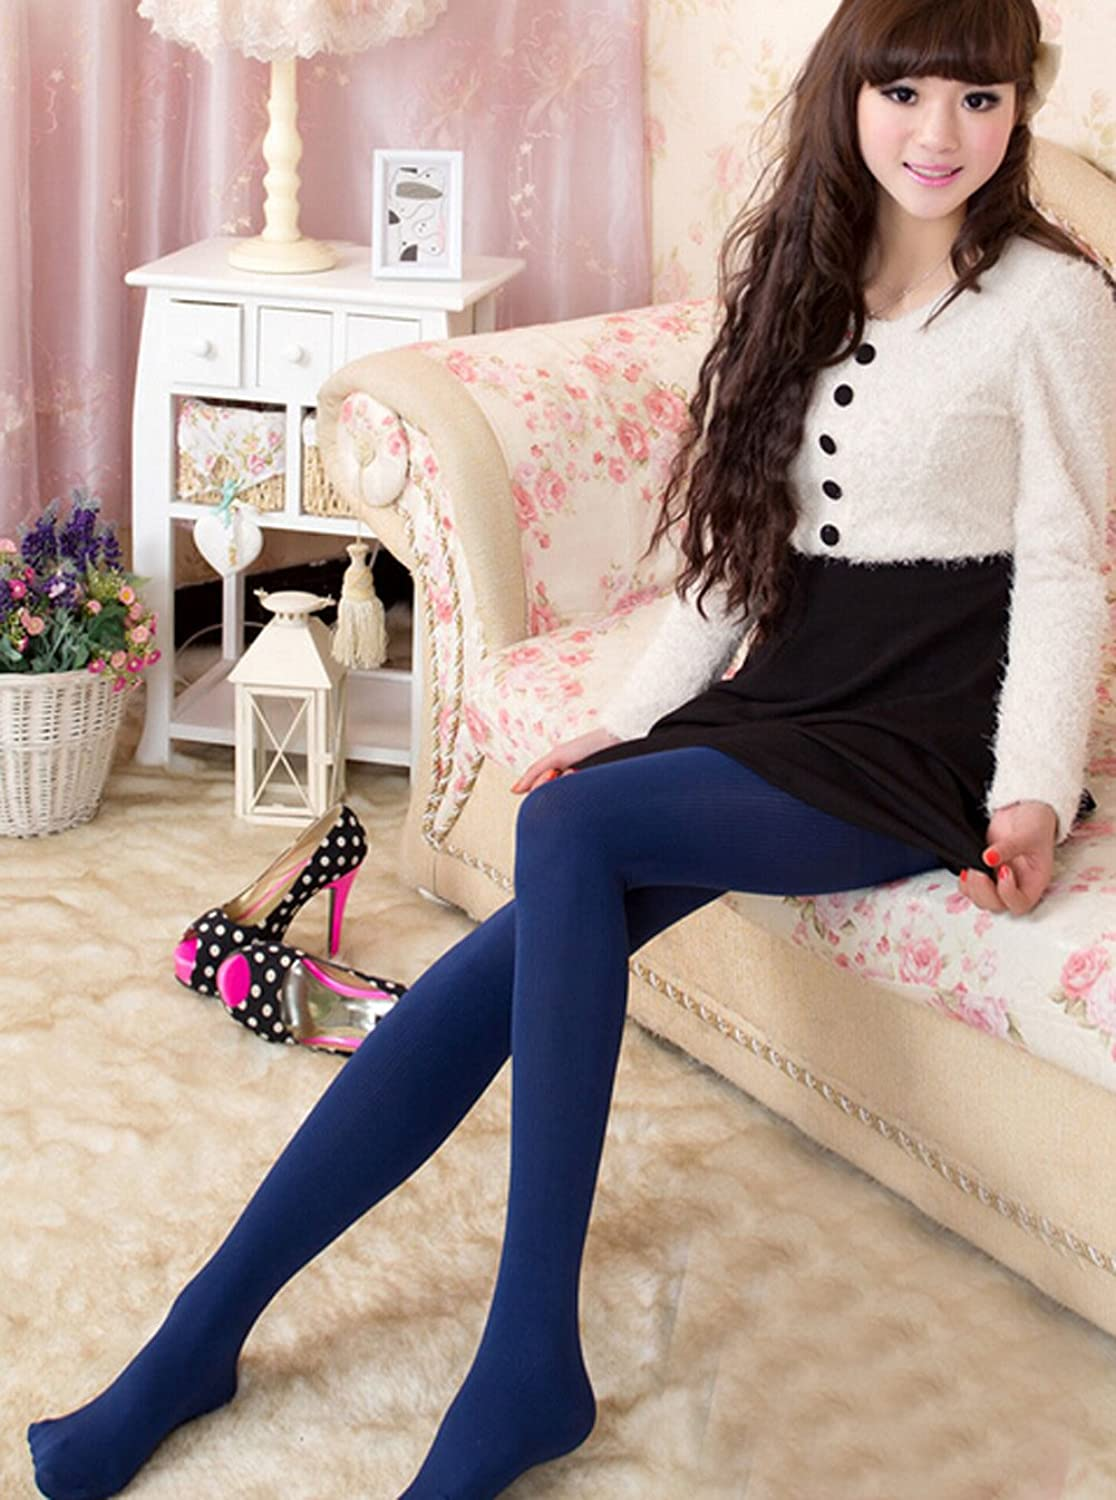 Freedi Stripes Good Elasticity Lined Control Top Slim Warm Panty Hose Stockings Leggings